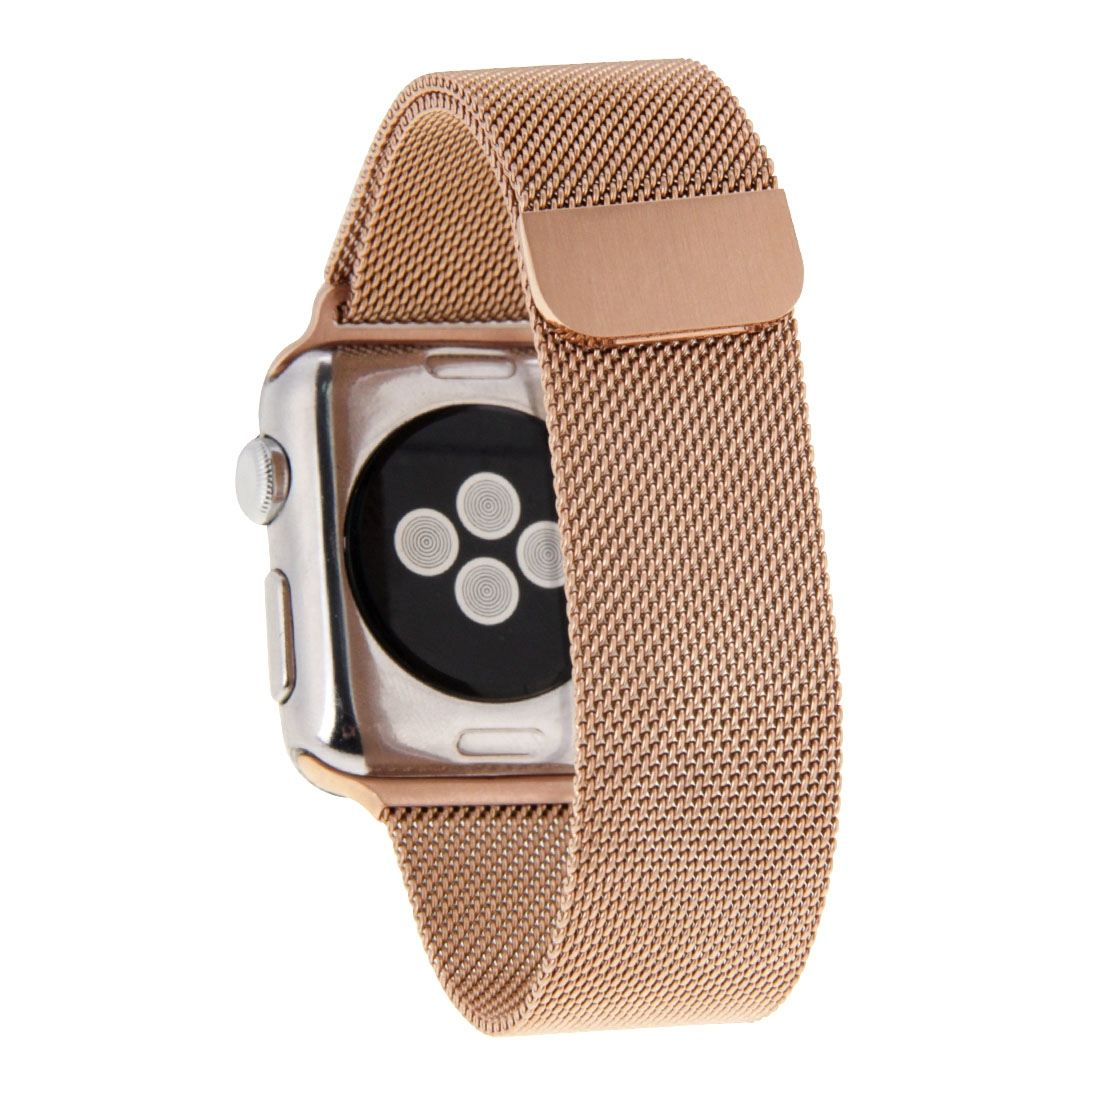 Armband för Apple Watch 38mm - Kedja Magnetisk